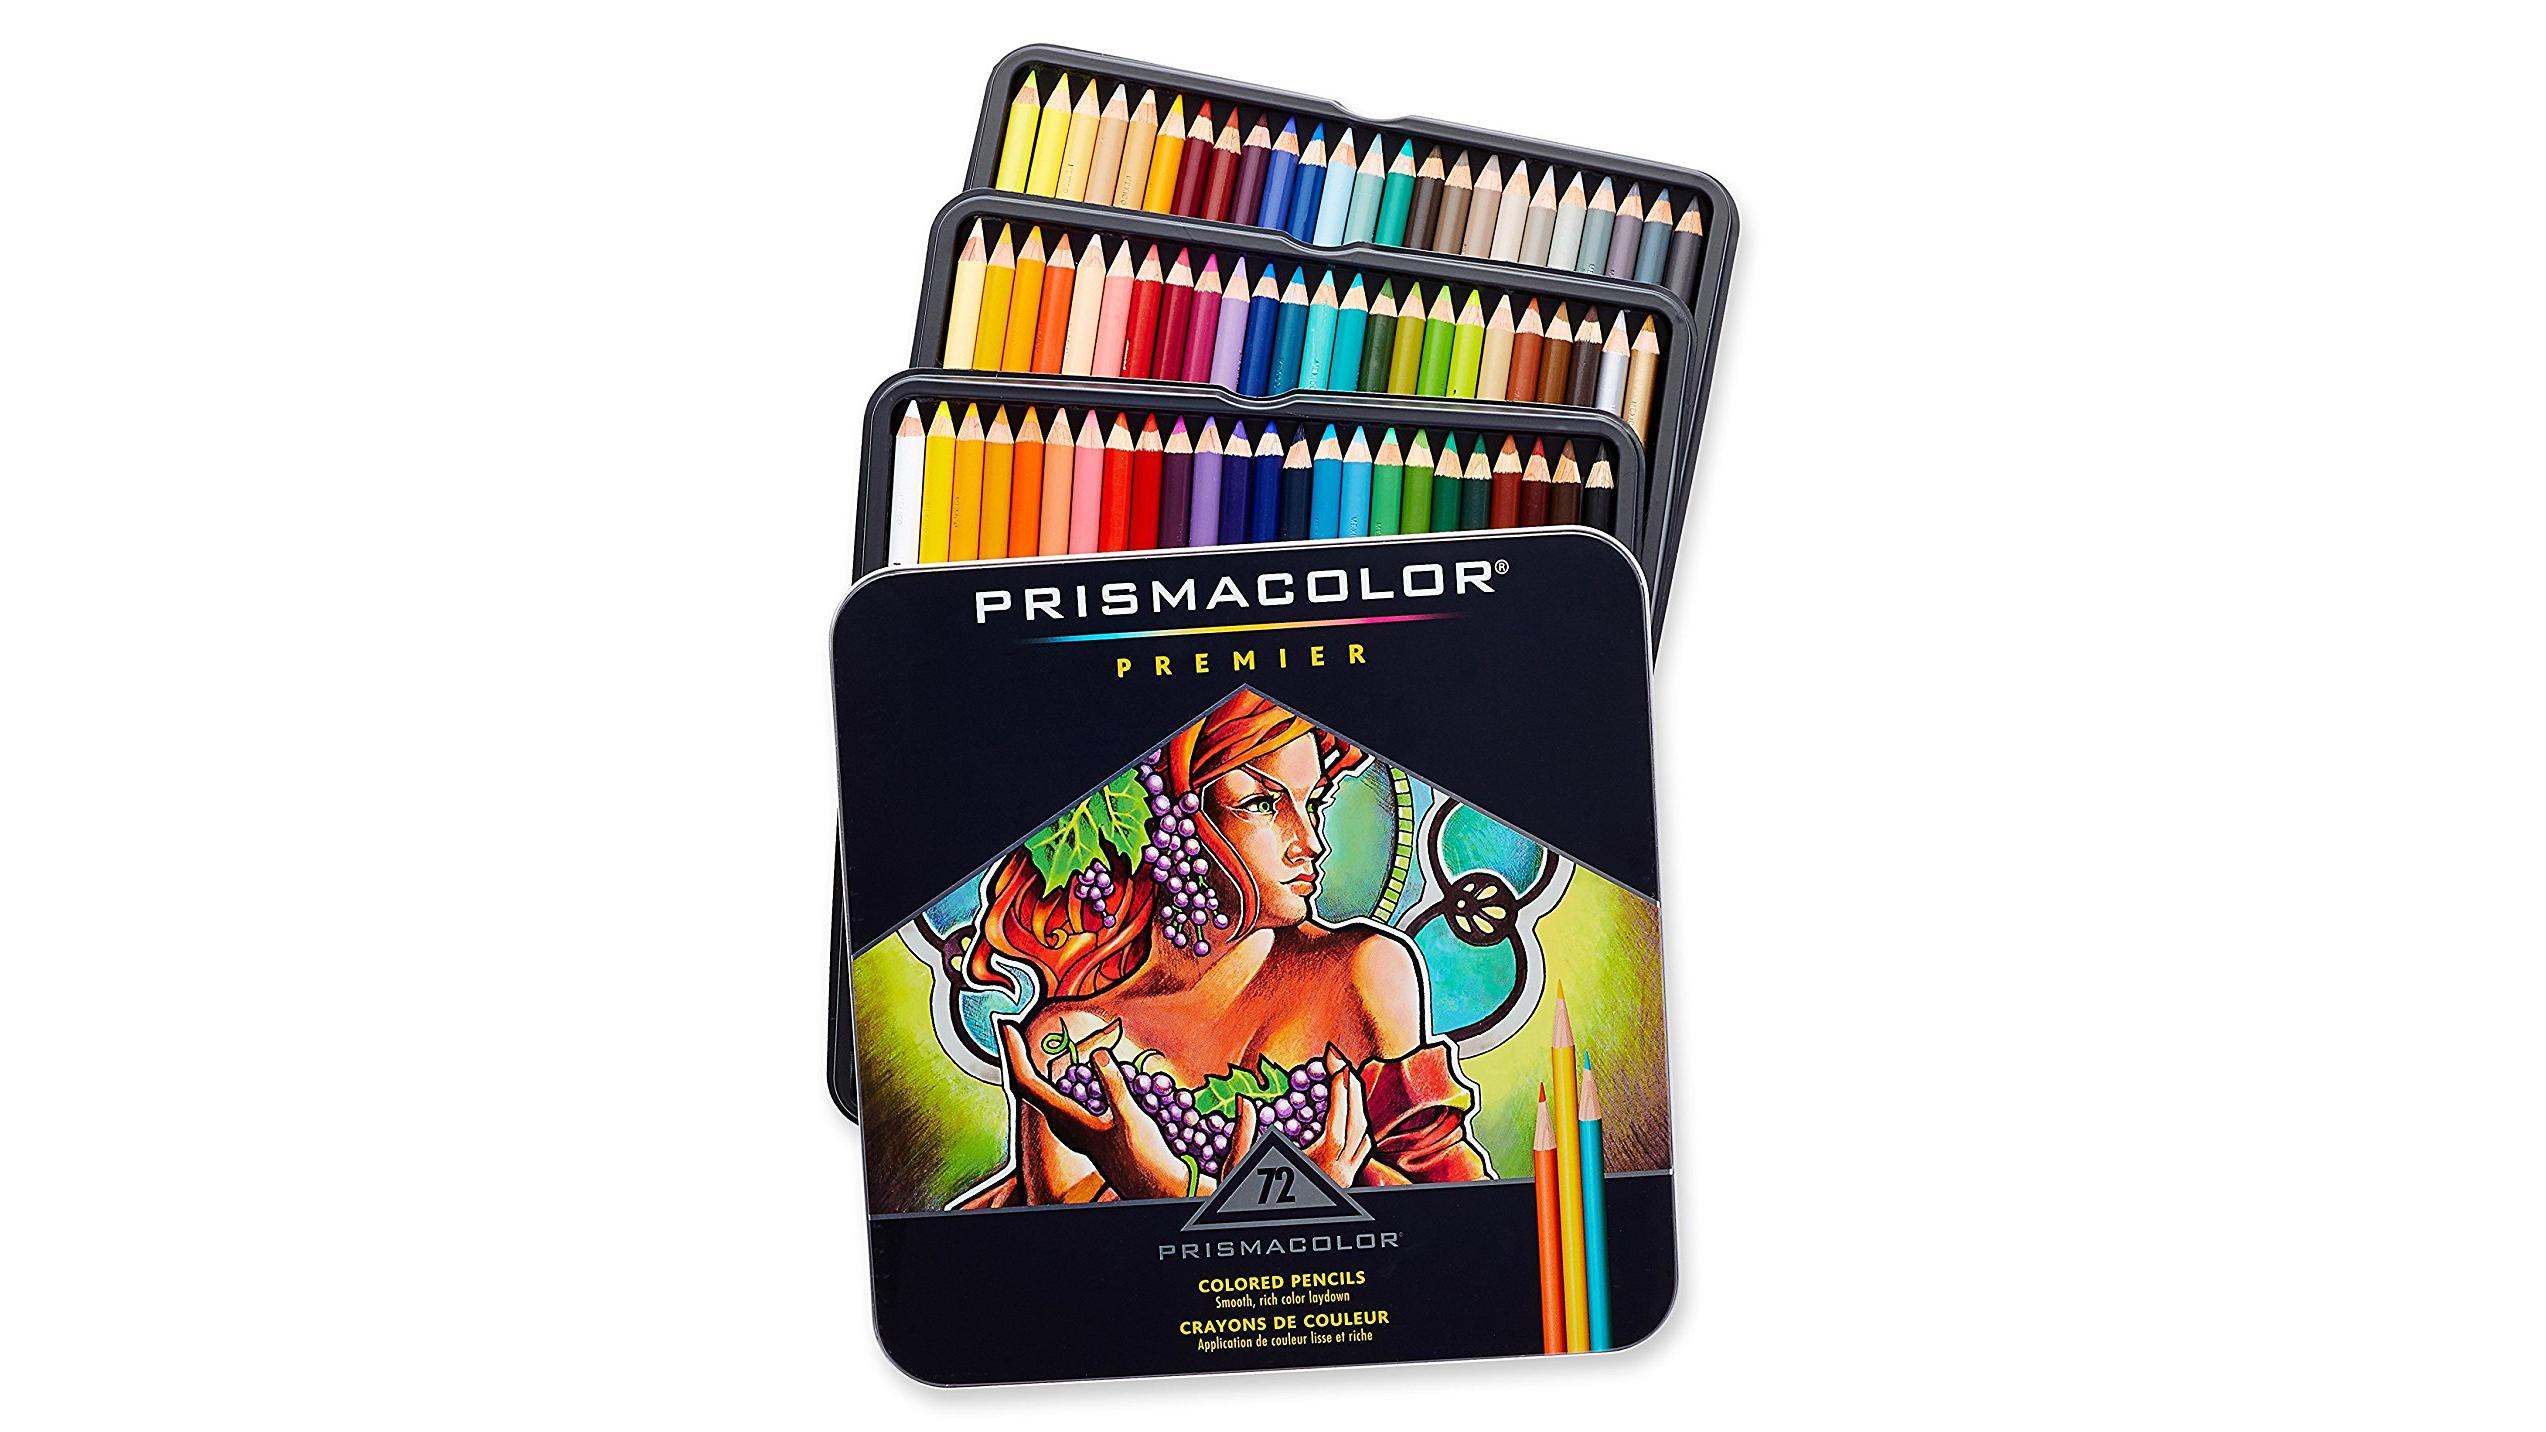 Colourful tins of Prismacolor Premier coloured pencils